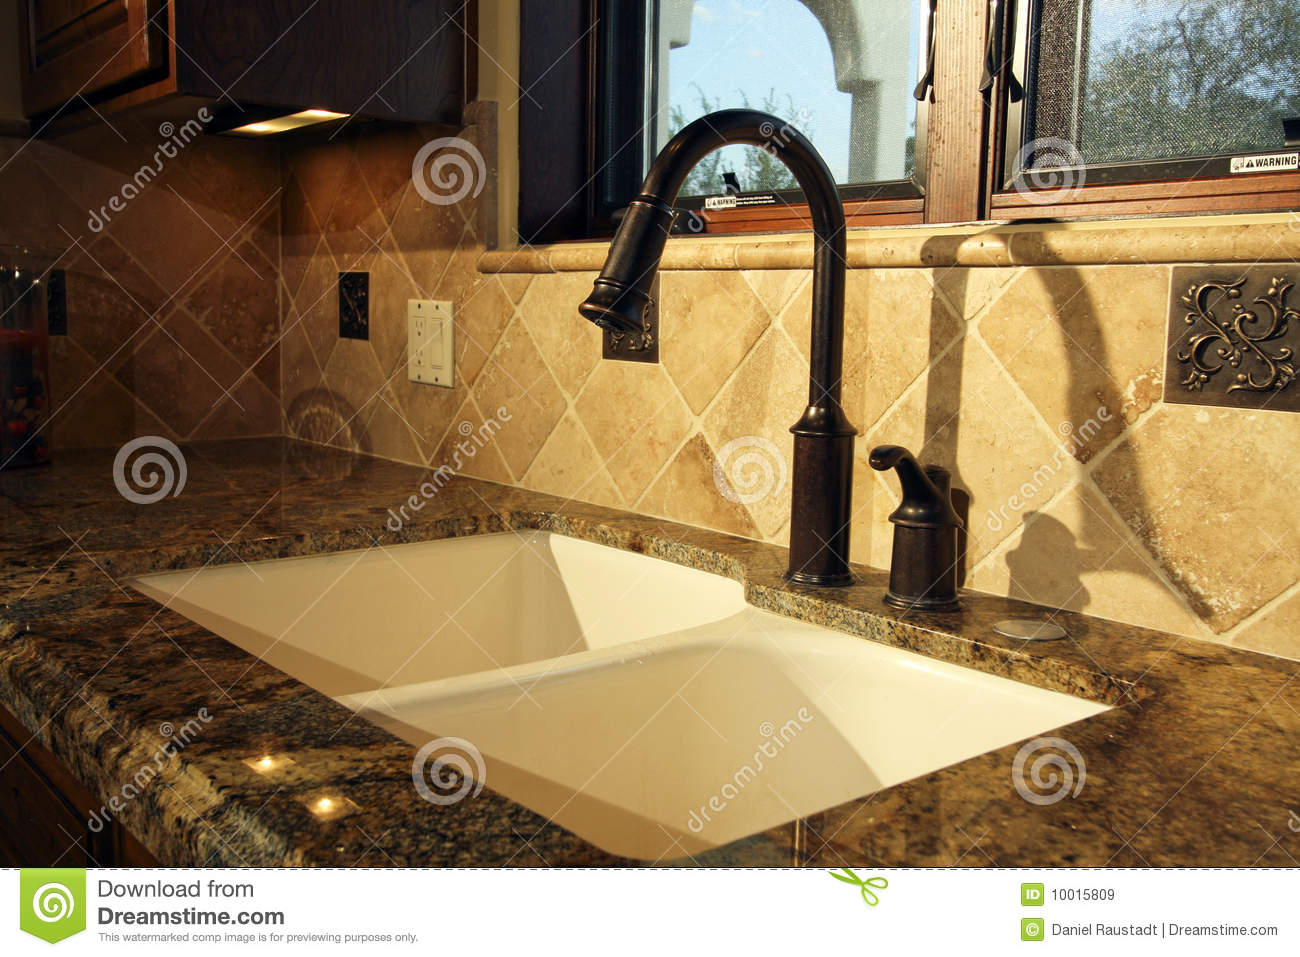 kitchen sink kitchen sinks and faucets Modern Kitchen Sink and Fixtures Royalty Free Stock Images